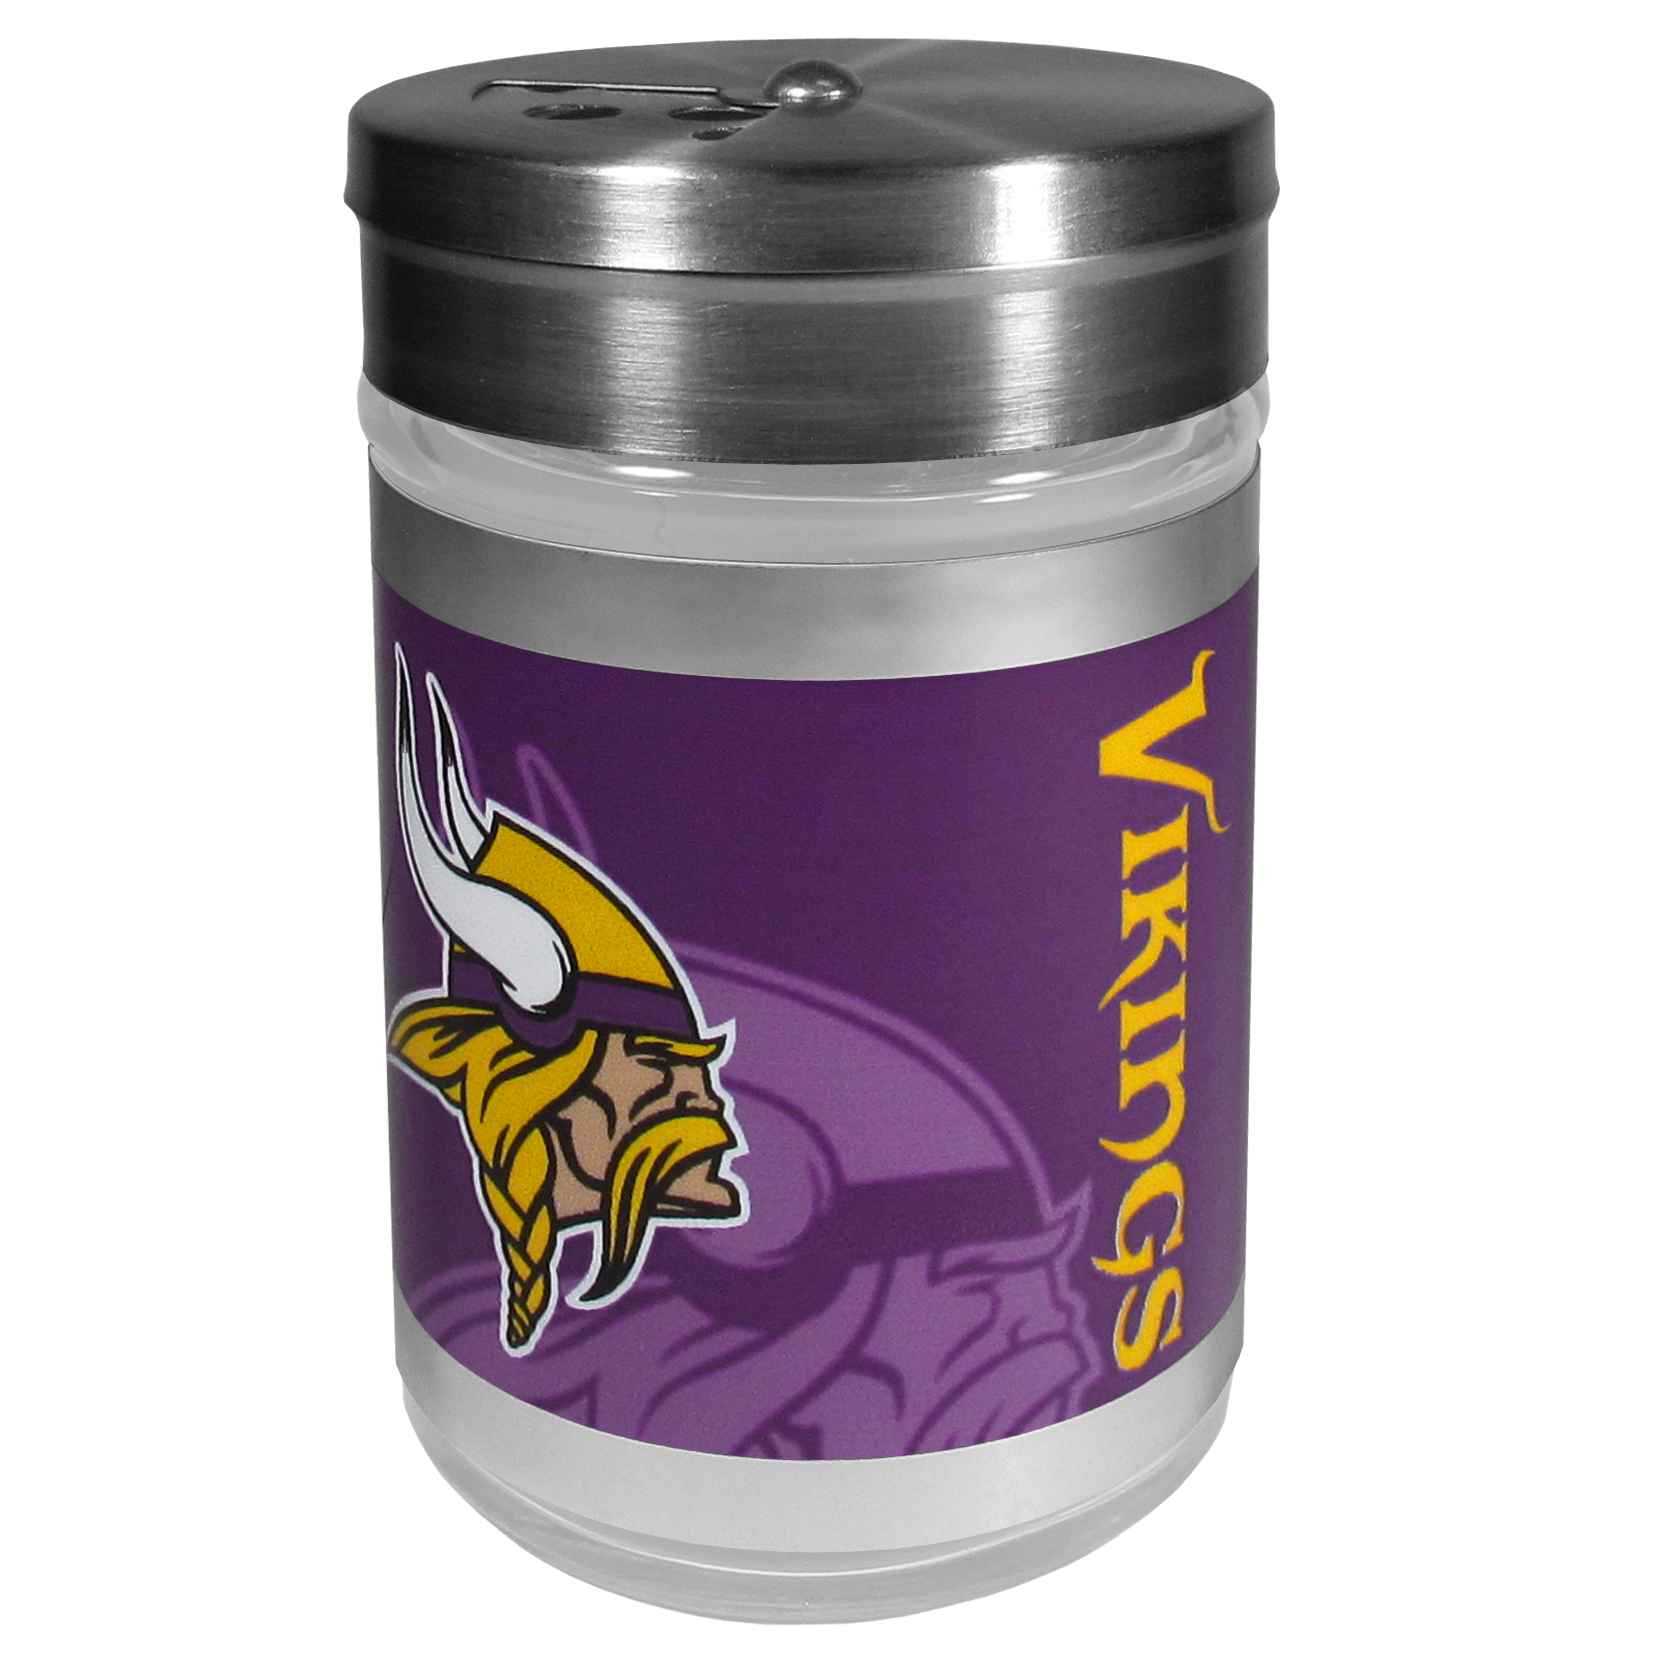 Minnesota Vikings Tailgater Season Shakers - Spice it up with our Minnesota Vikings tailgater season shakers! This compact shaker is 2 inch tall with a twist top that closes off the holes at the top making it perfect for travel preventing those messy spills. The shaker has wide holes perfect for keeping your pepper seeds or cheese toppings. The bright team graphics will make you the envy of the other fans while you are grilling up your tailgating goodies.